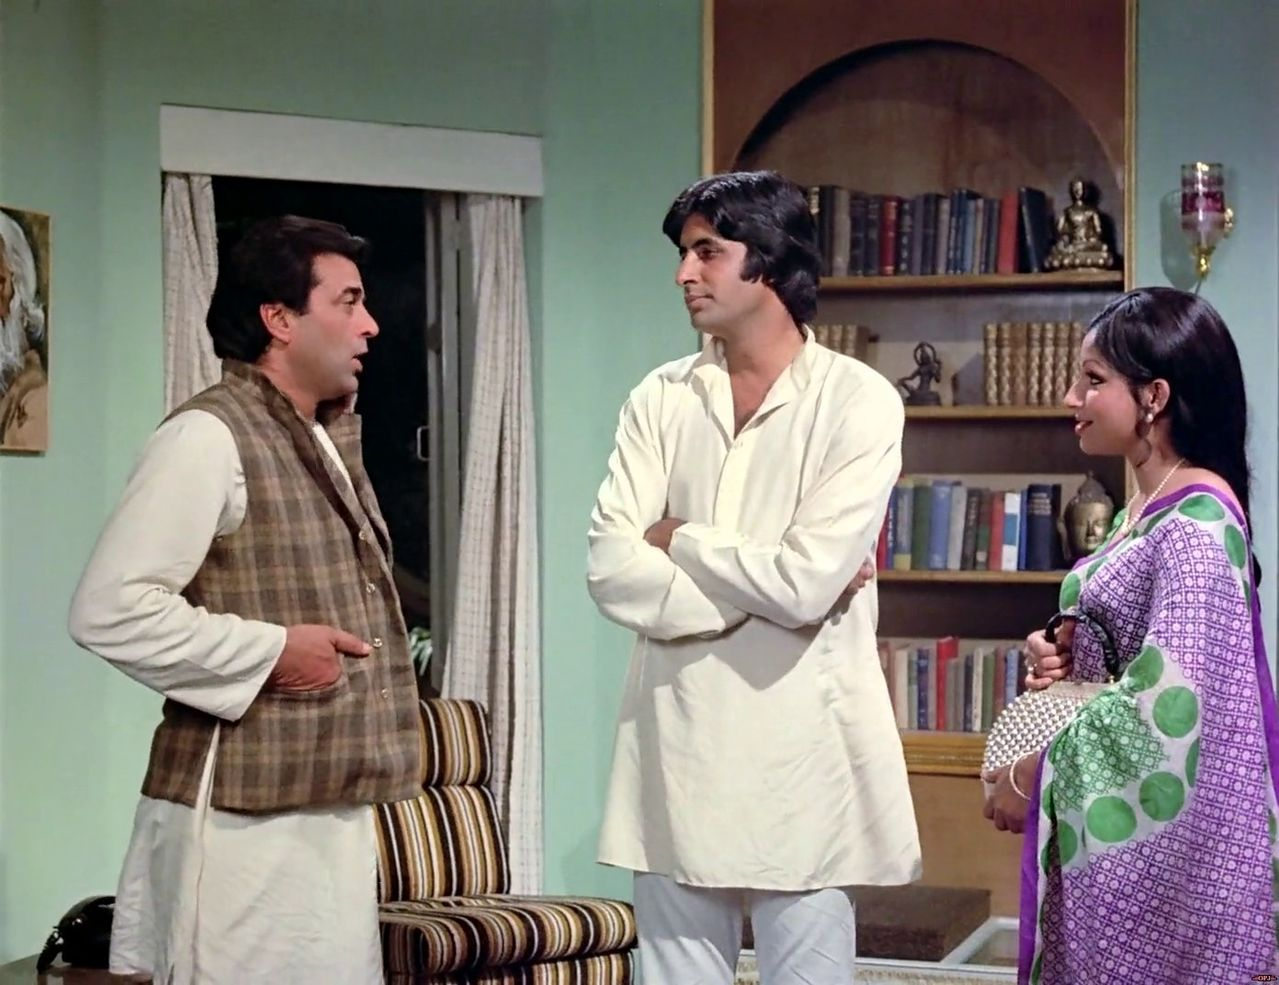 bollywood-ke-kisse-The-government-had-taken-the-support-of-Amitabh-Bachchan-and-Dharmendra-to-avoid-the-outbreak-of-solar-eclipse